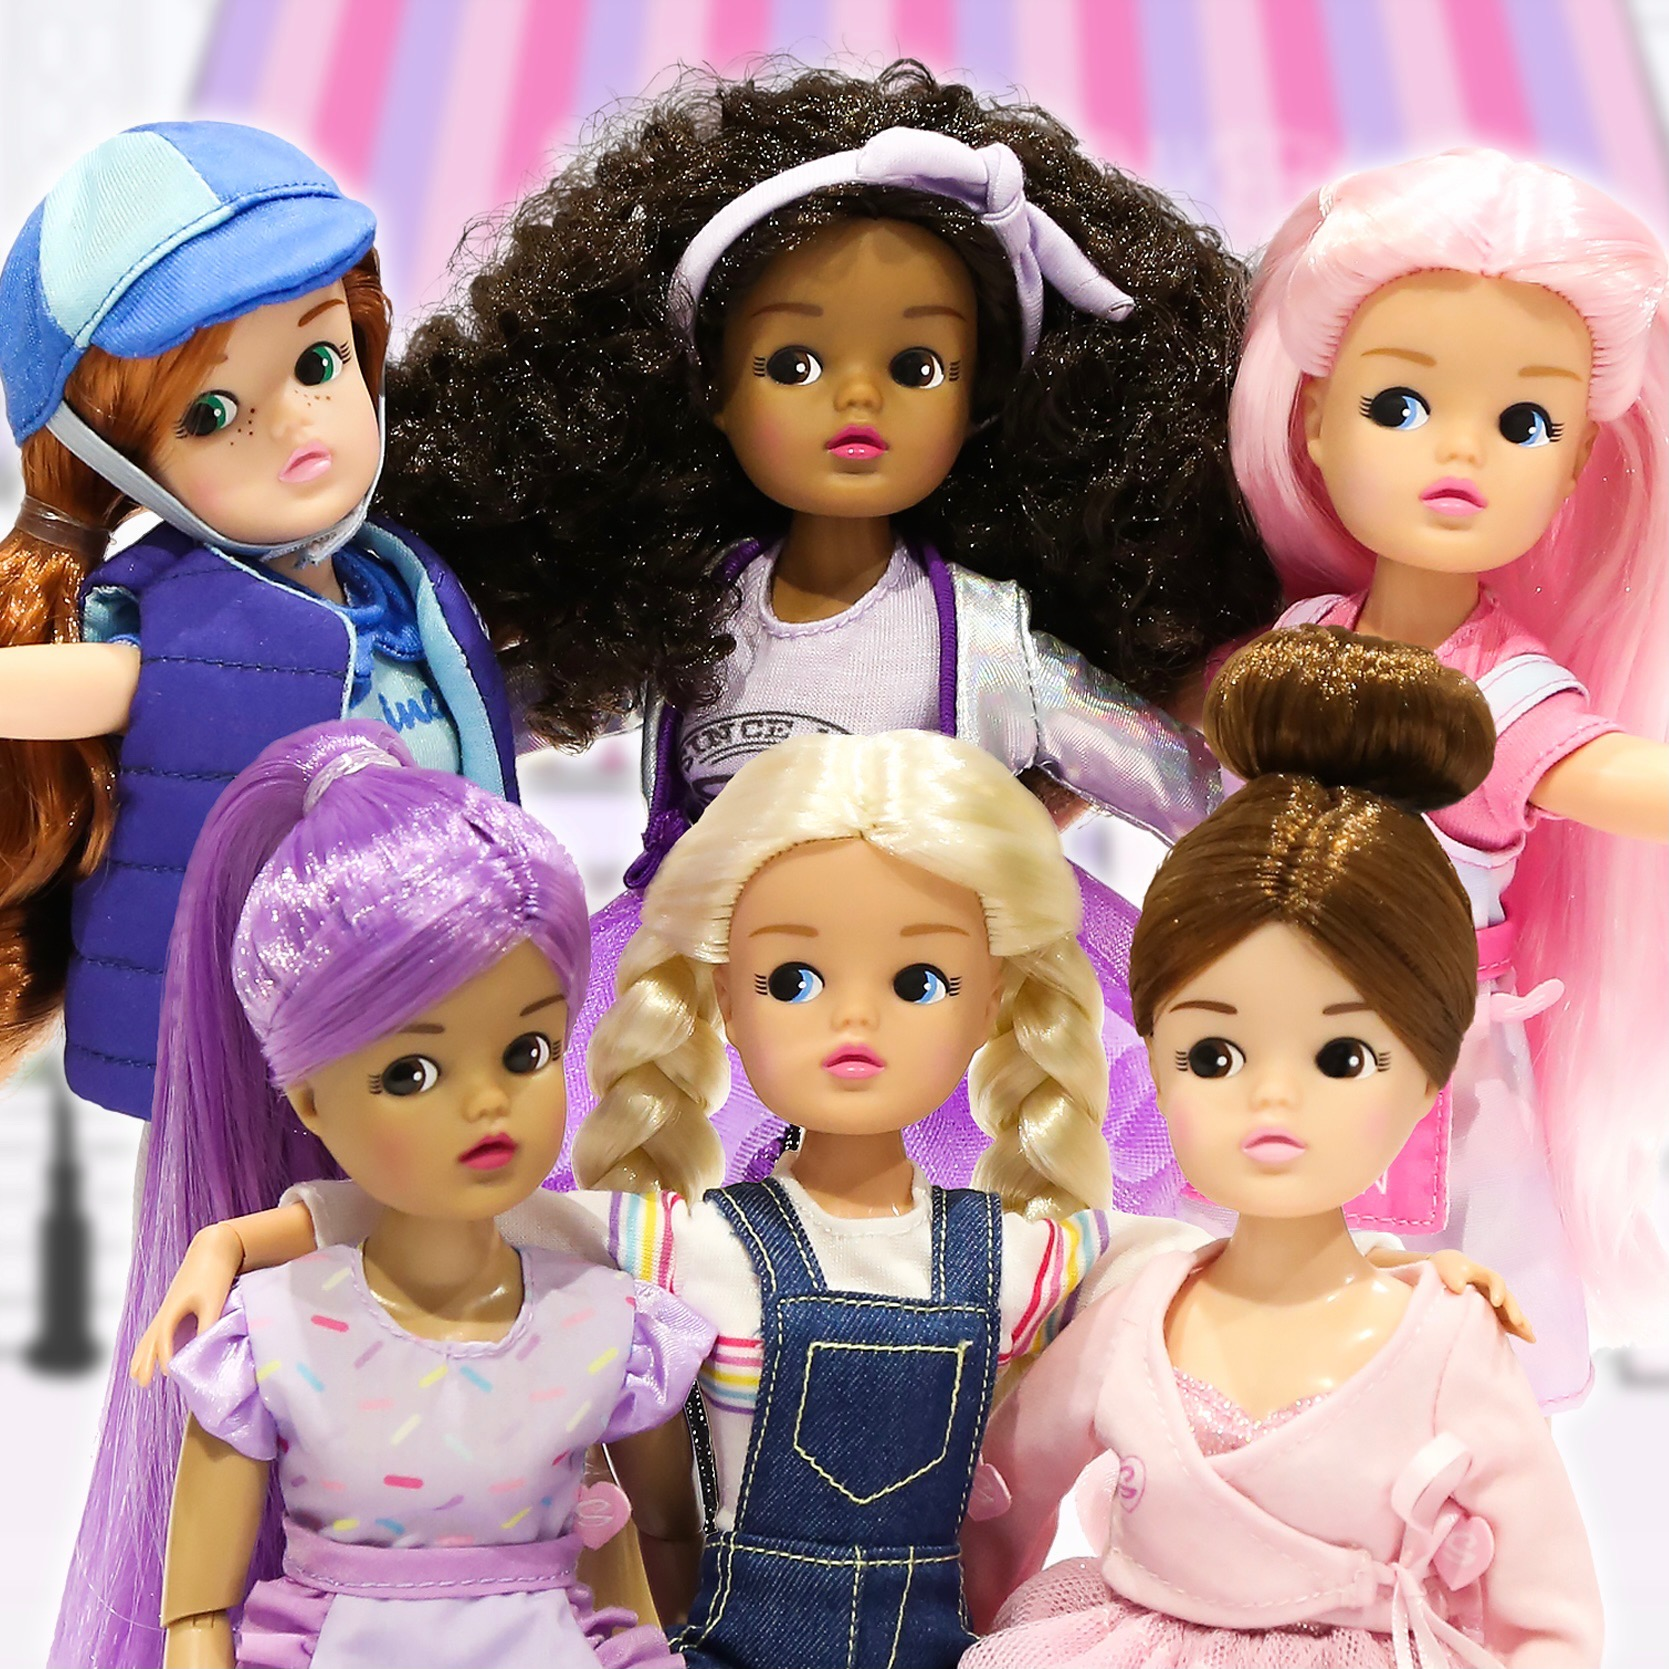 KID KREATIONS BRING BACK SINDY FOR A WHOLE NEW GENERATION TO ENJOY